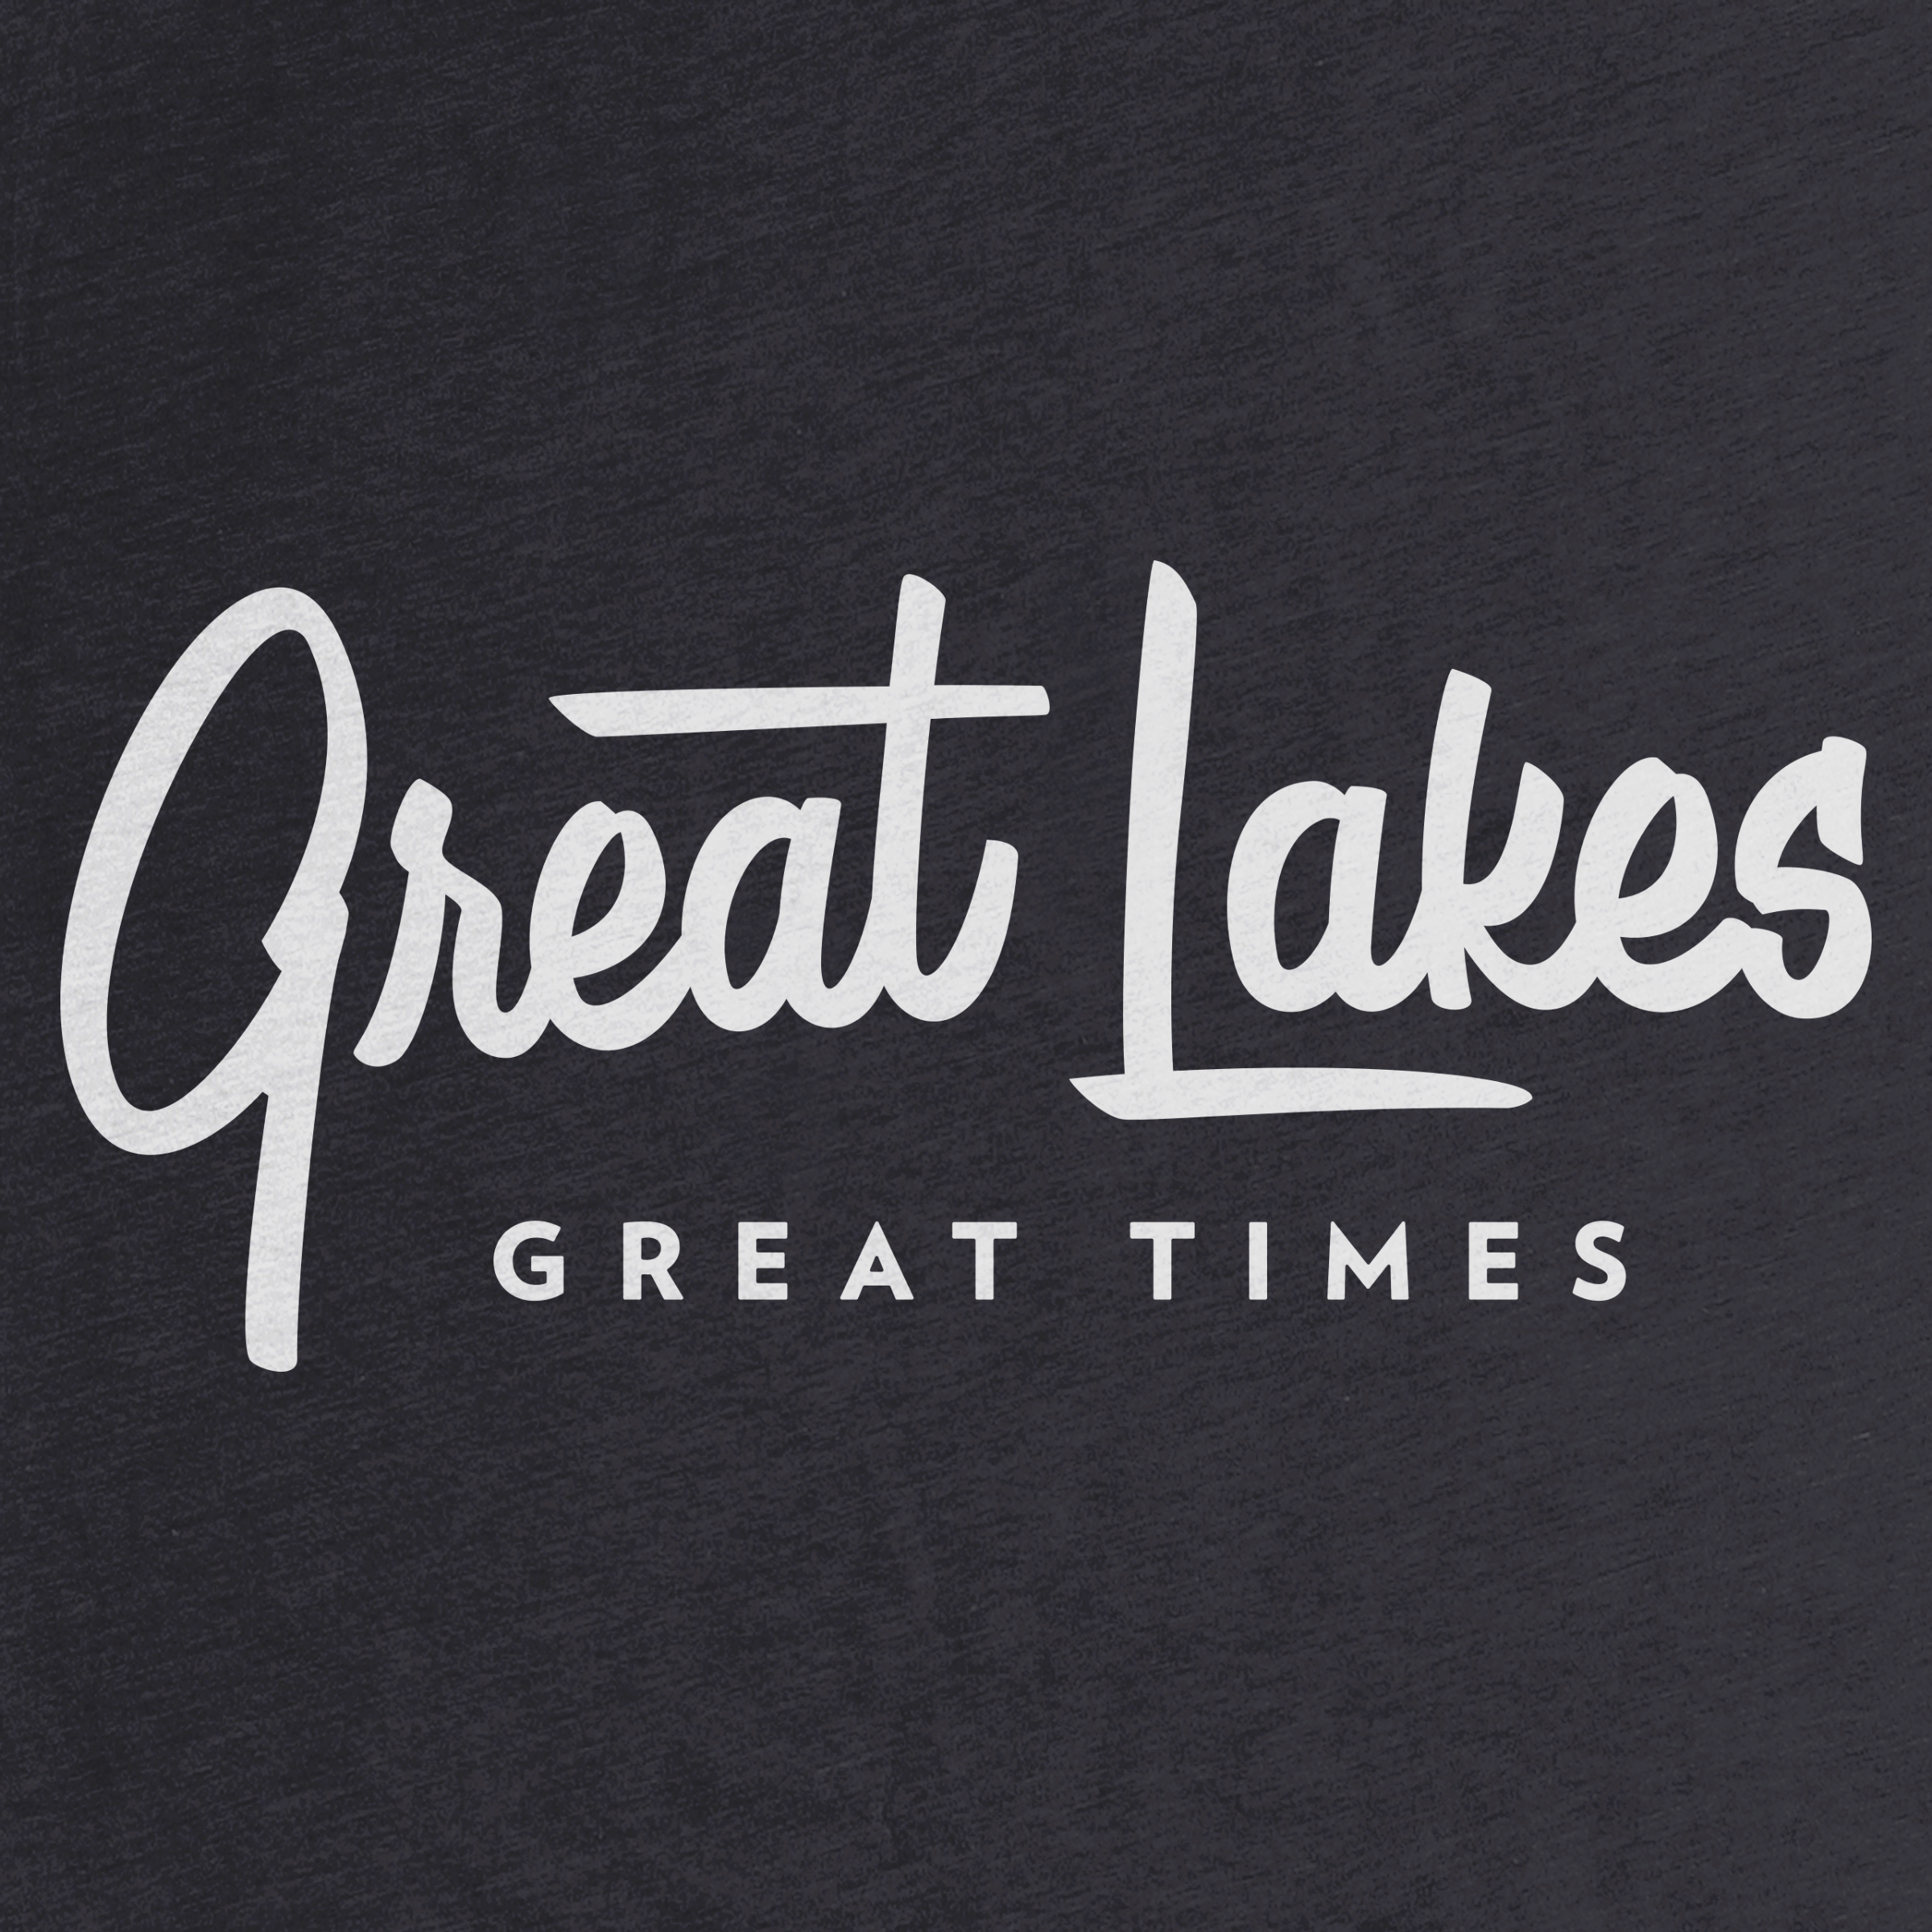 Great Lakes, Great Times